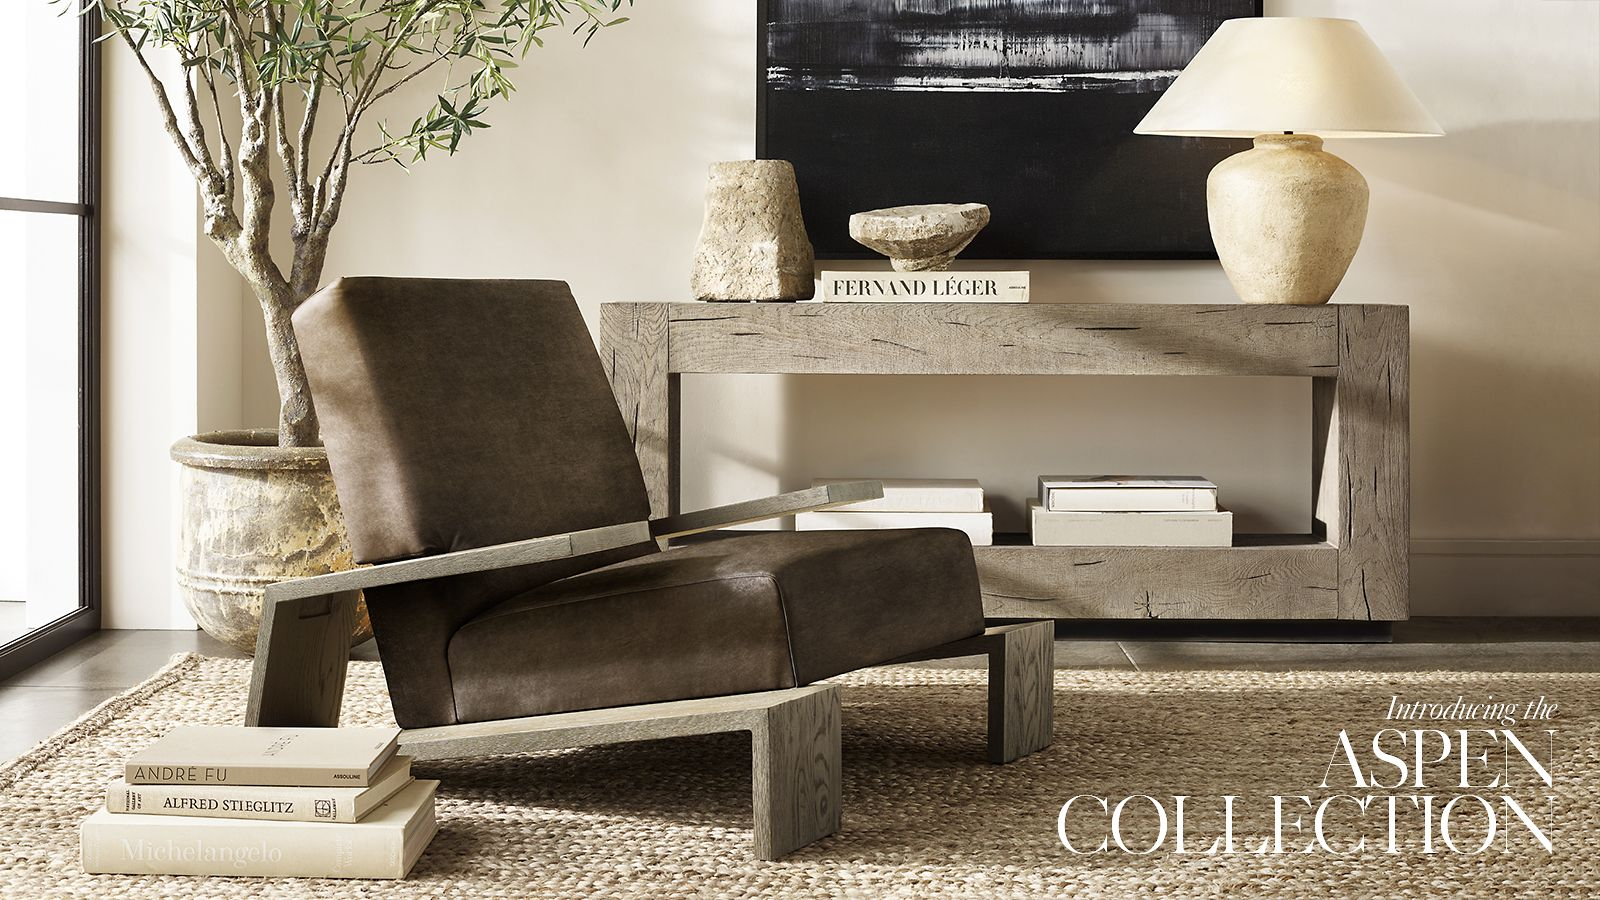 https://media.restorationhardware.com/is/image/rhis/071218_rhhp_aspen_slide01?wid=1600&fmt=jpeg&qlt=80,0&op_sharpen=0&resMode=sharp&op_usm=0.3,1.0,5,0&iccEmbed=1